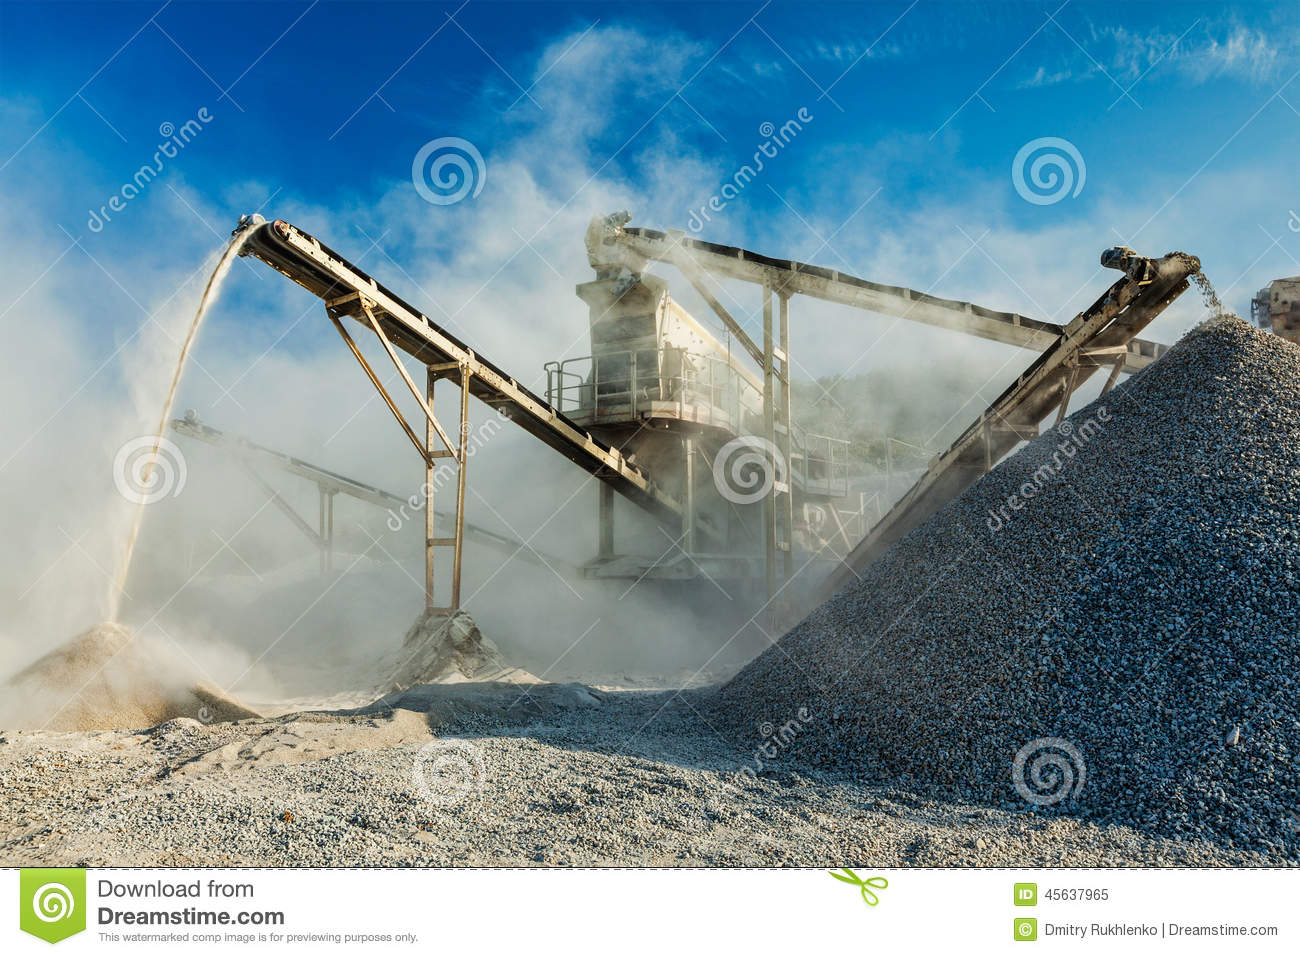 How To Start Stone Crushing Plan For Produce Concrete